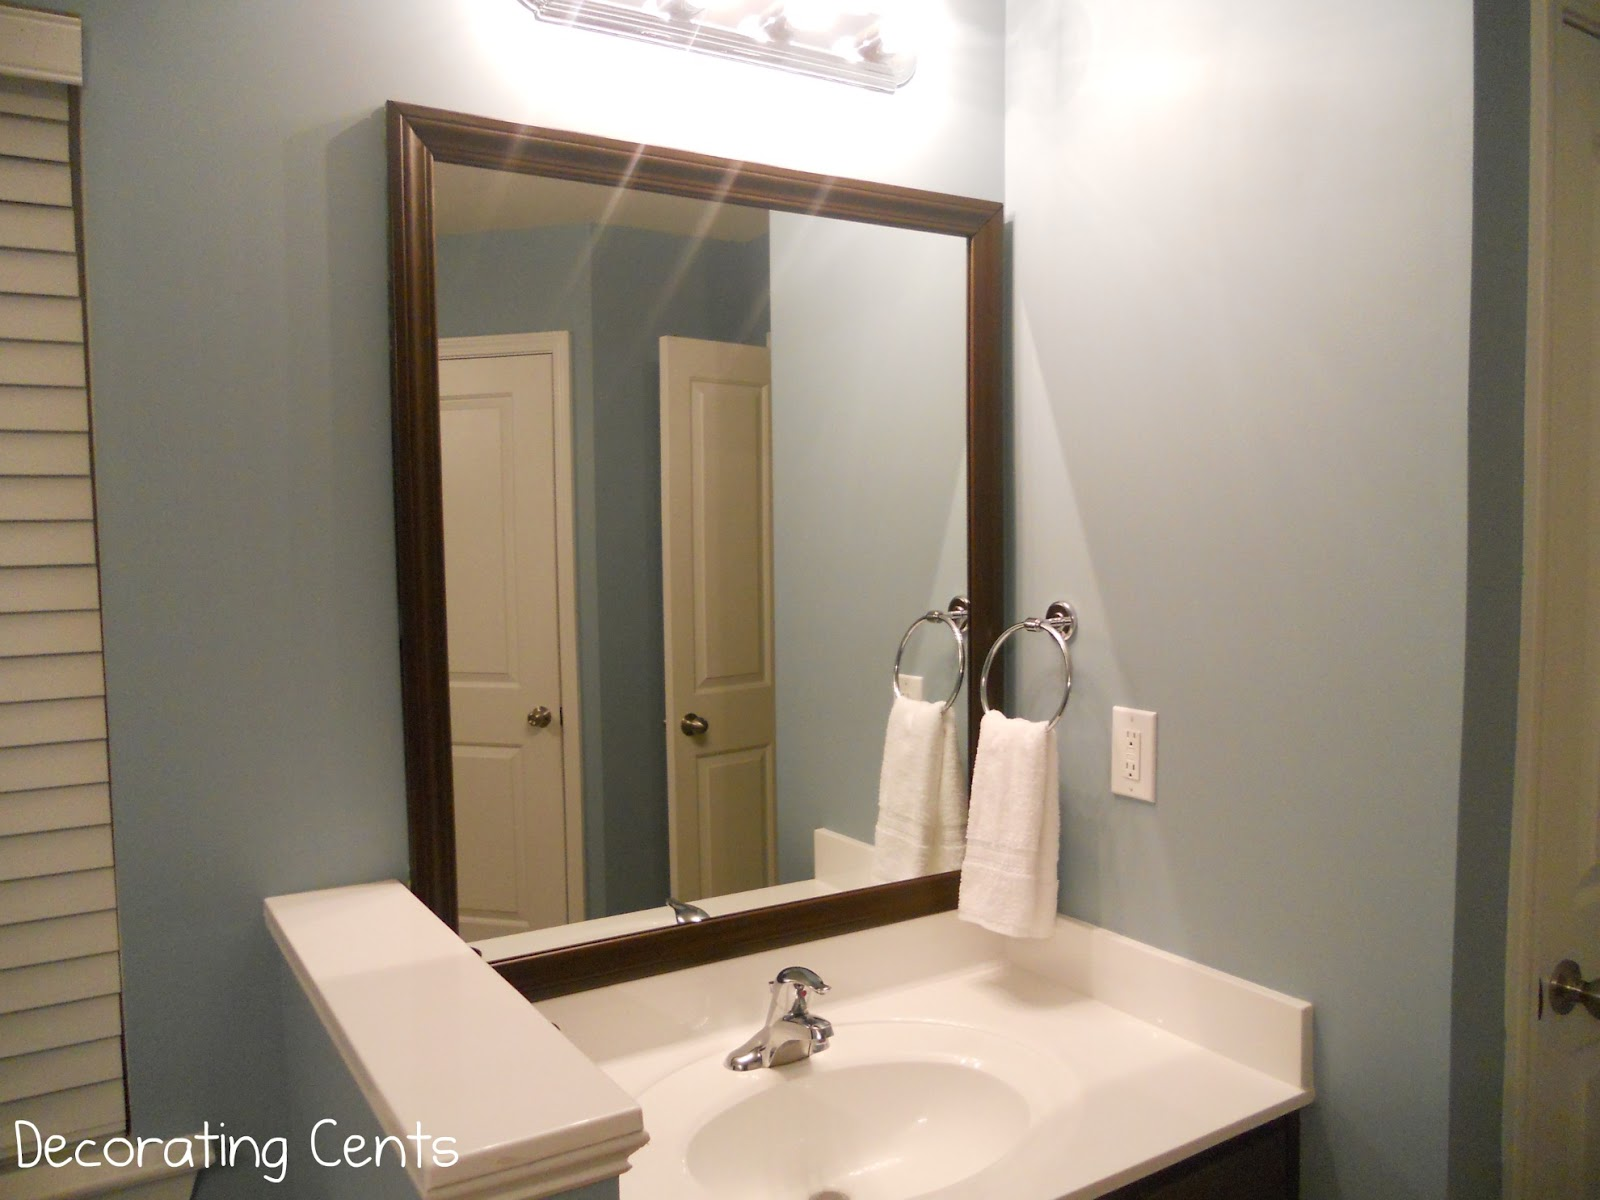 Mirror In The Bathroom Beauteous Decorating Cents Framing The Bathroom Mirrors 2017